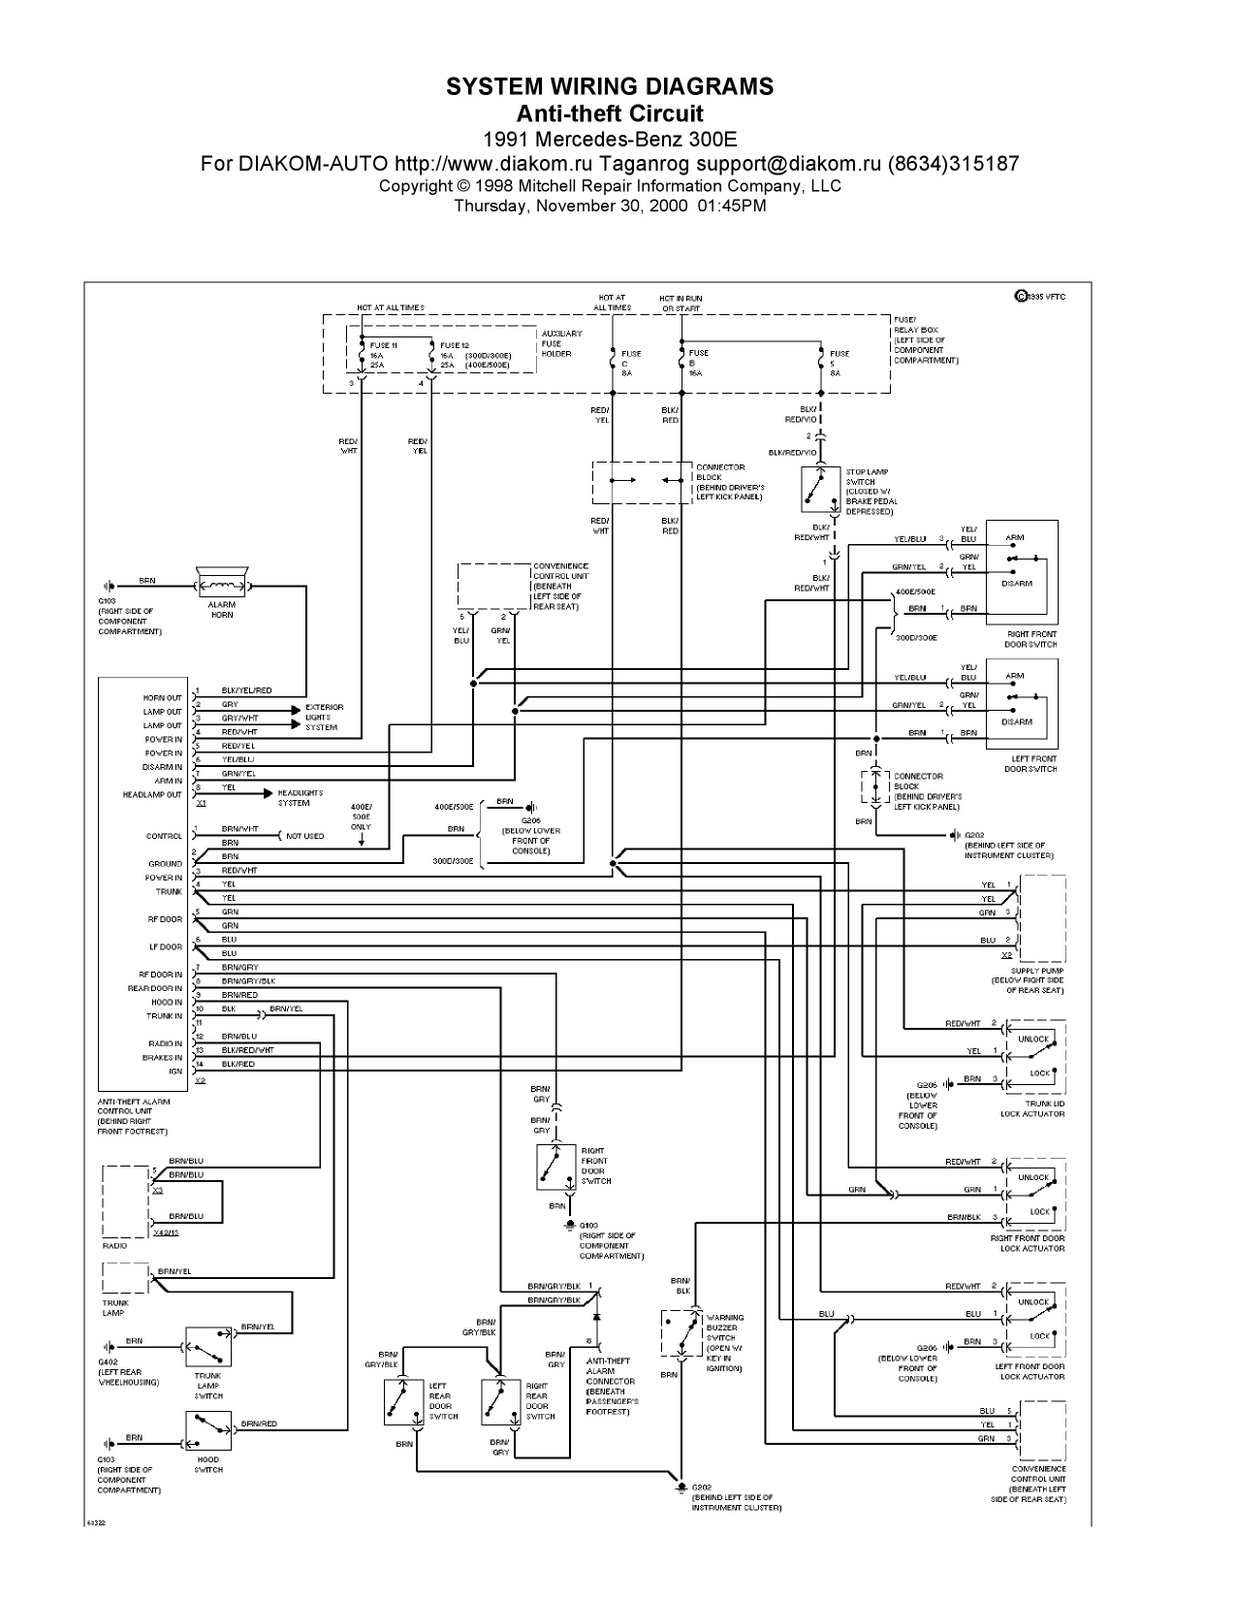 Mercedes Benz 300e System Wiring Diagrams Anti Theft Circuit